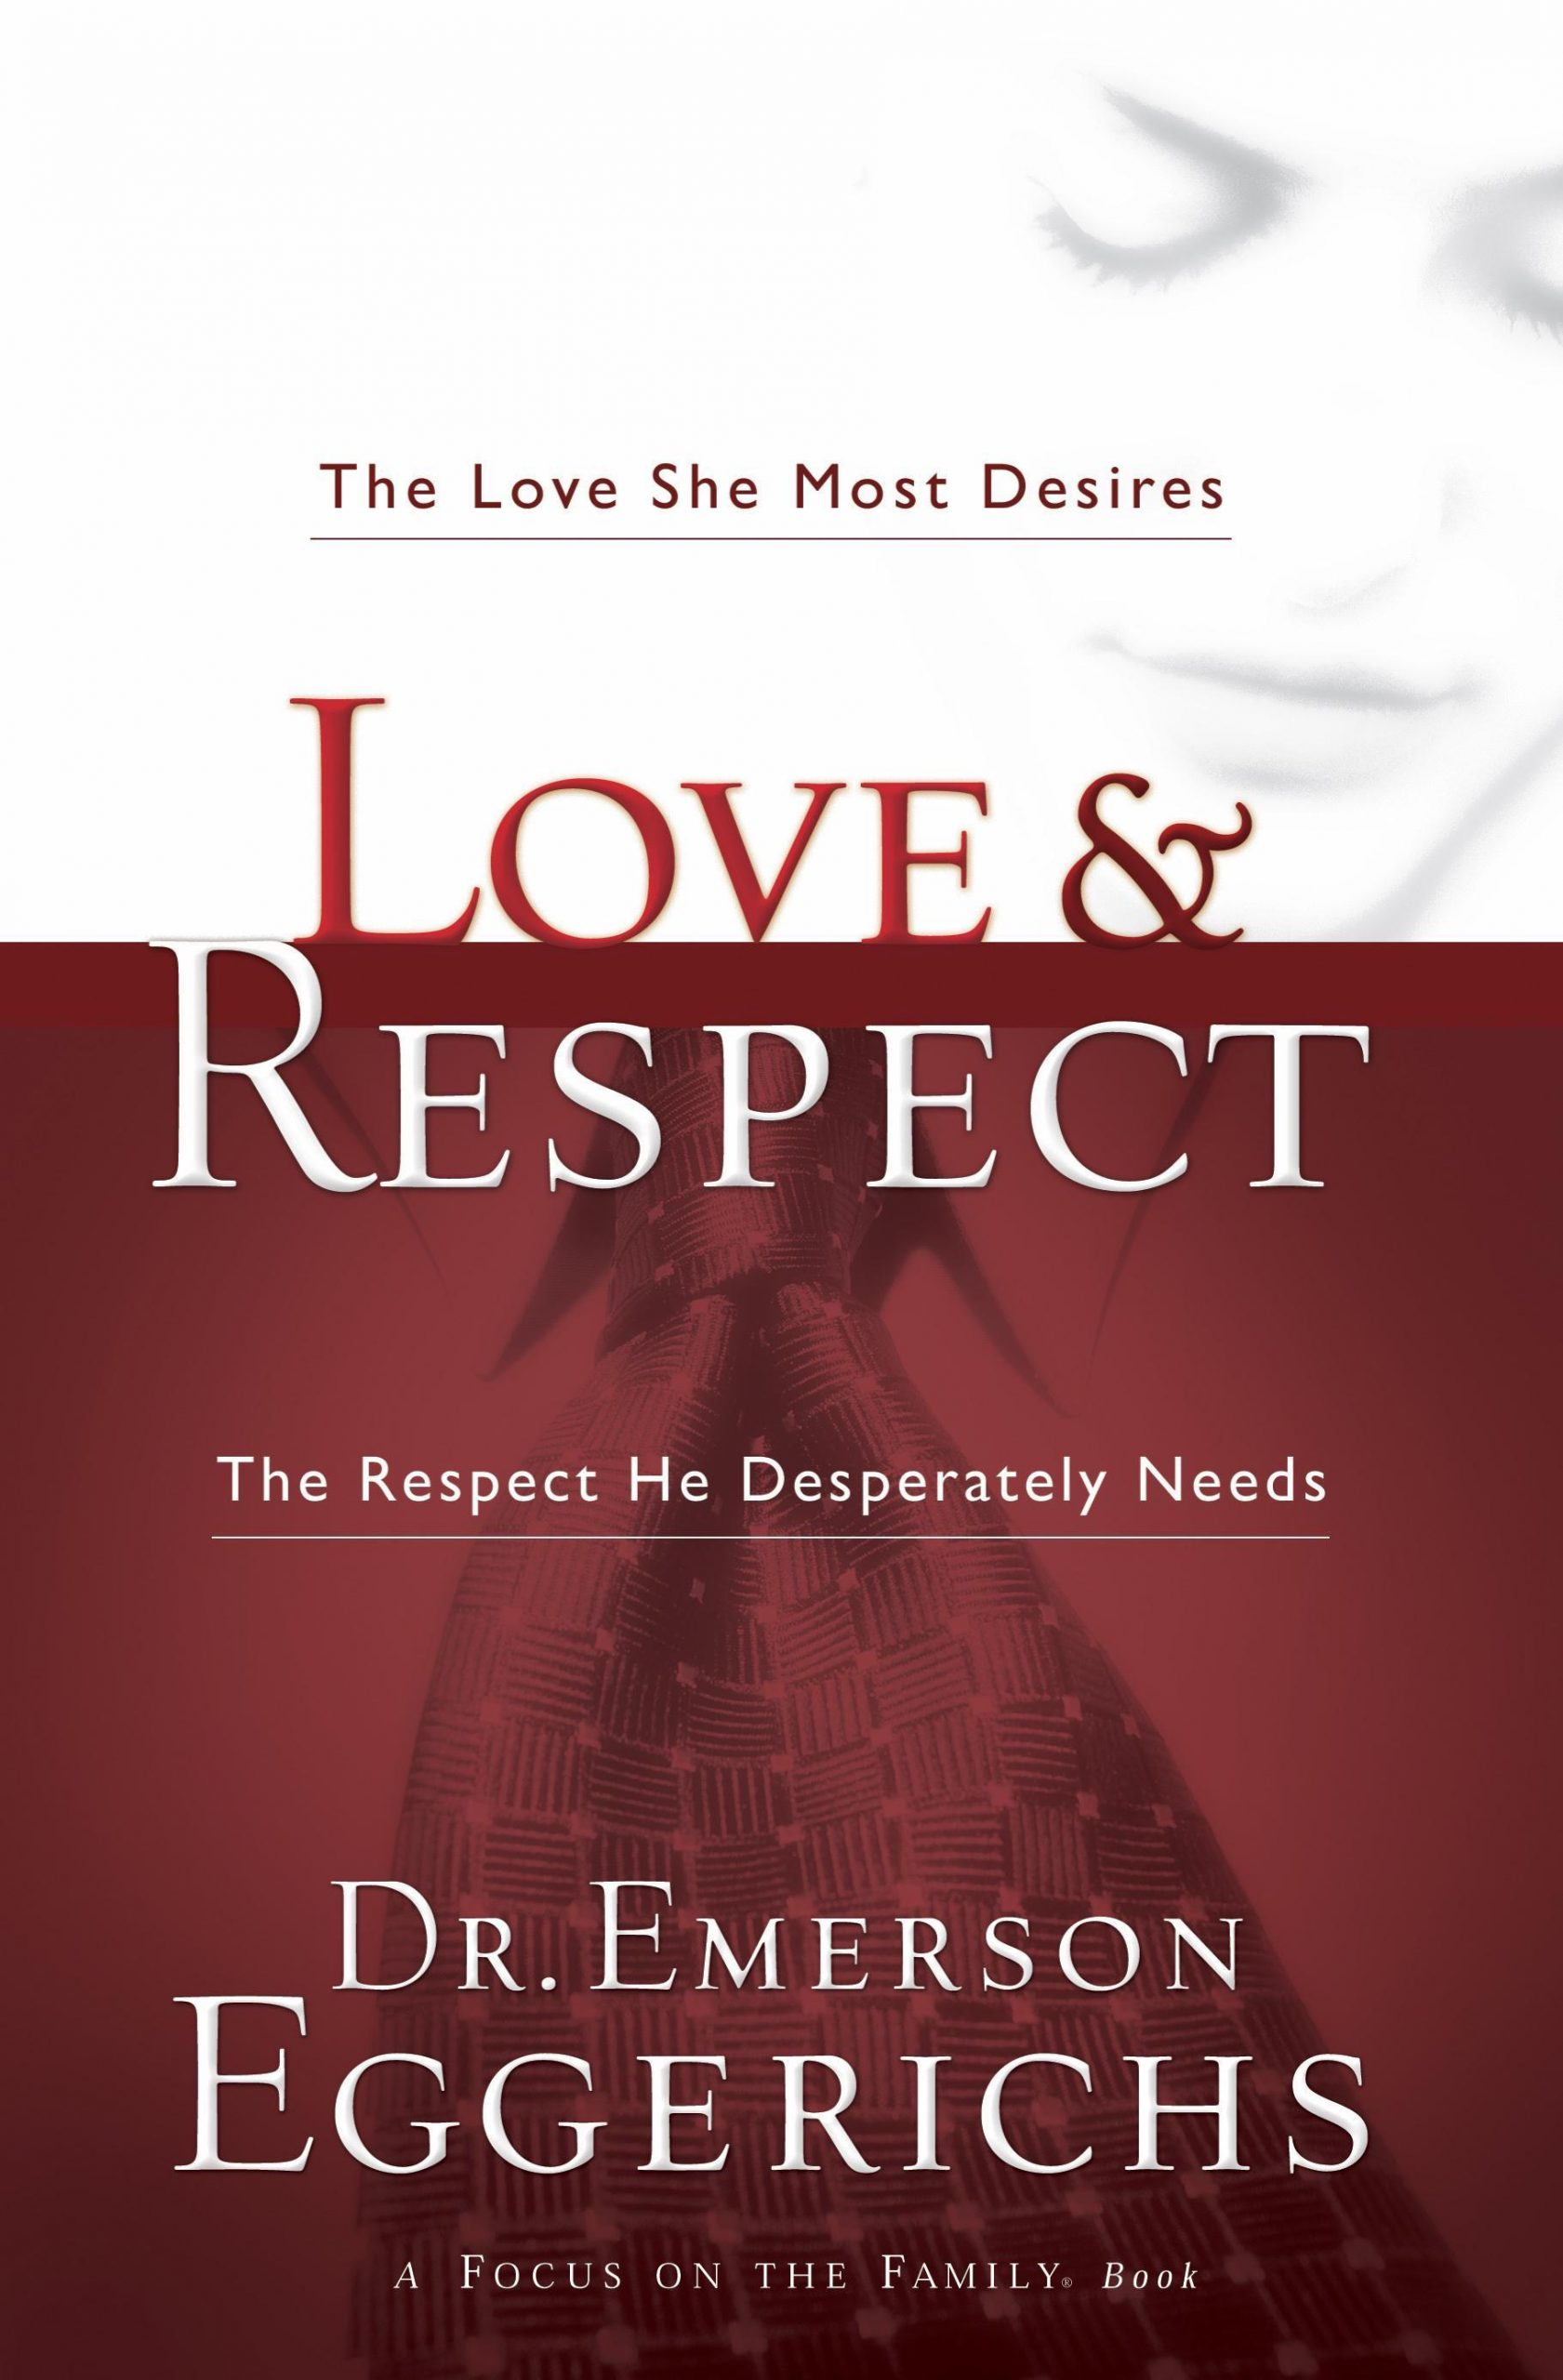 Marriage Reminders with Dr. Emerson Eggerichs